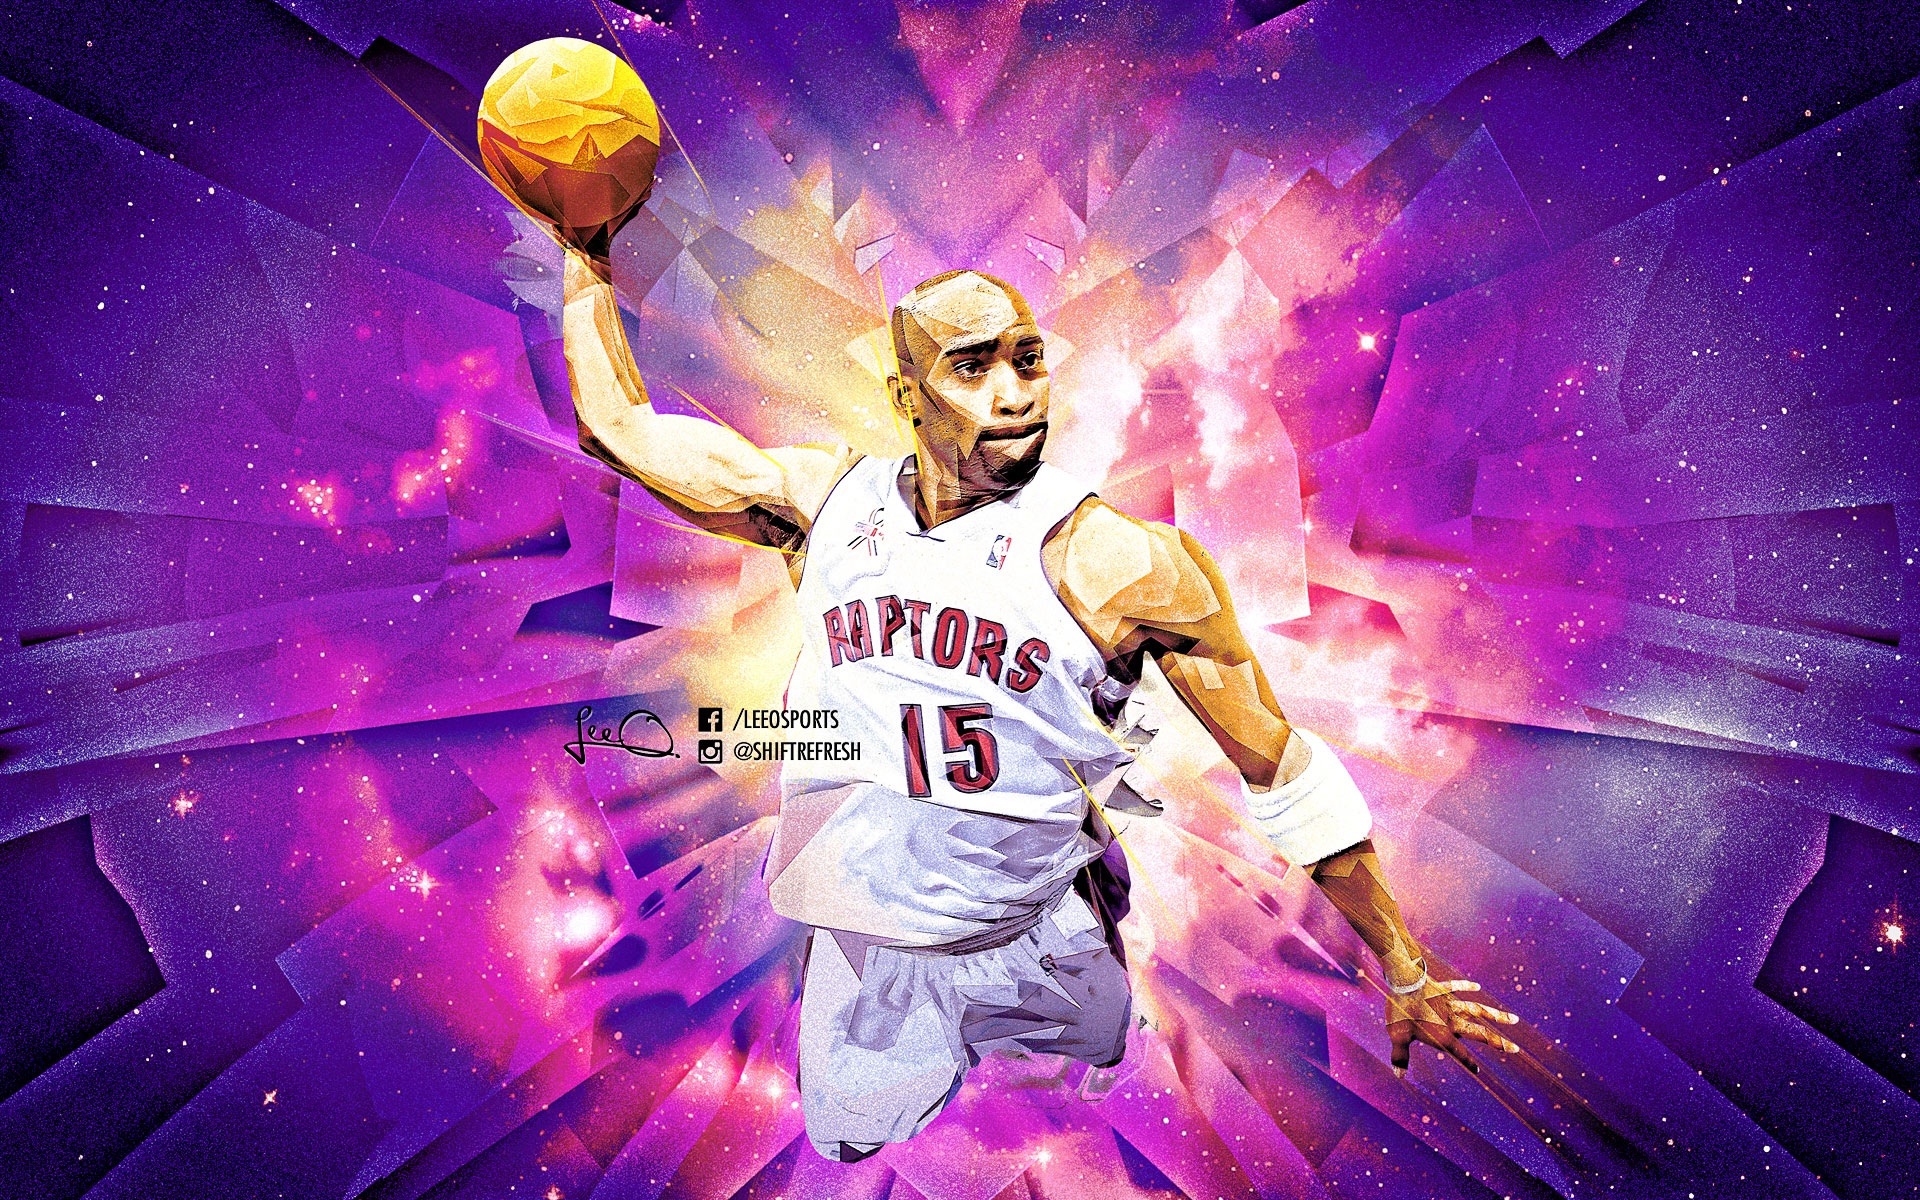 Vince Carter Tribute 2016 19201200 Wallpaper Basketball Wallpapers 1920x1200